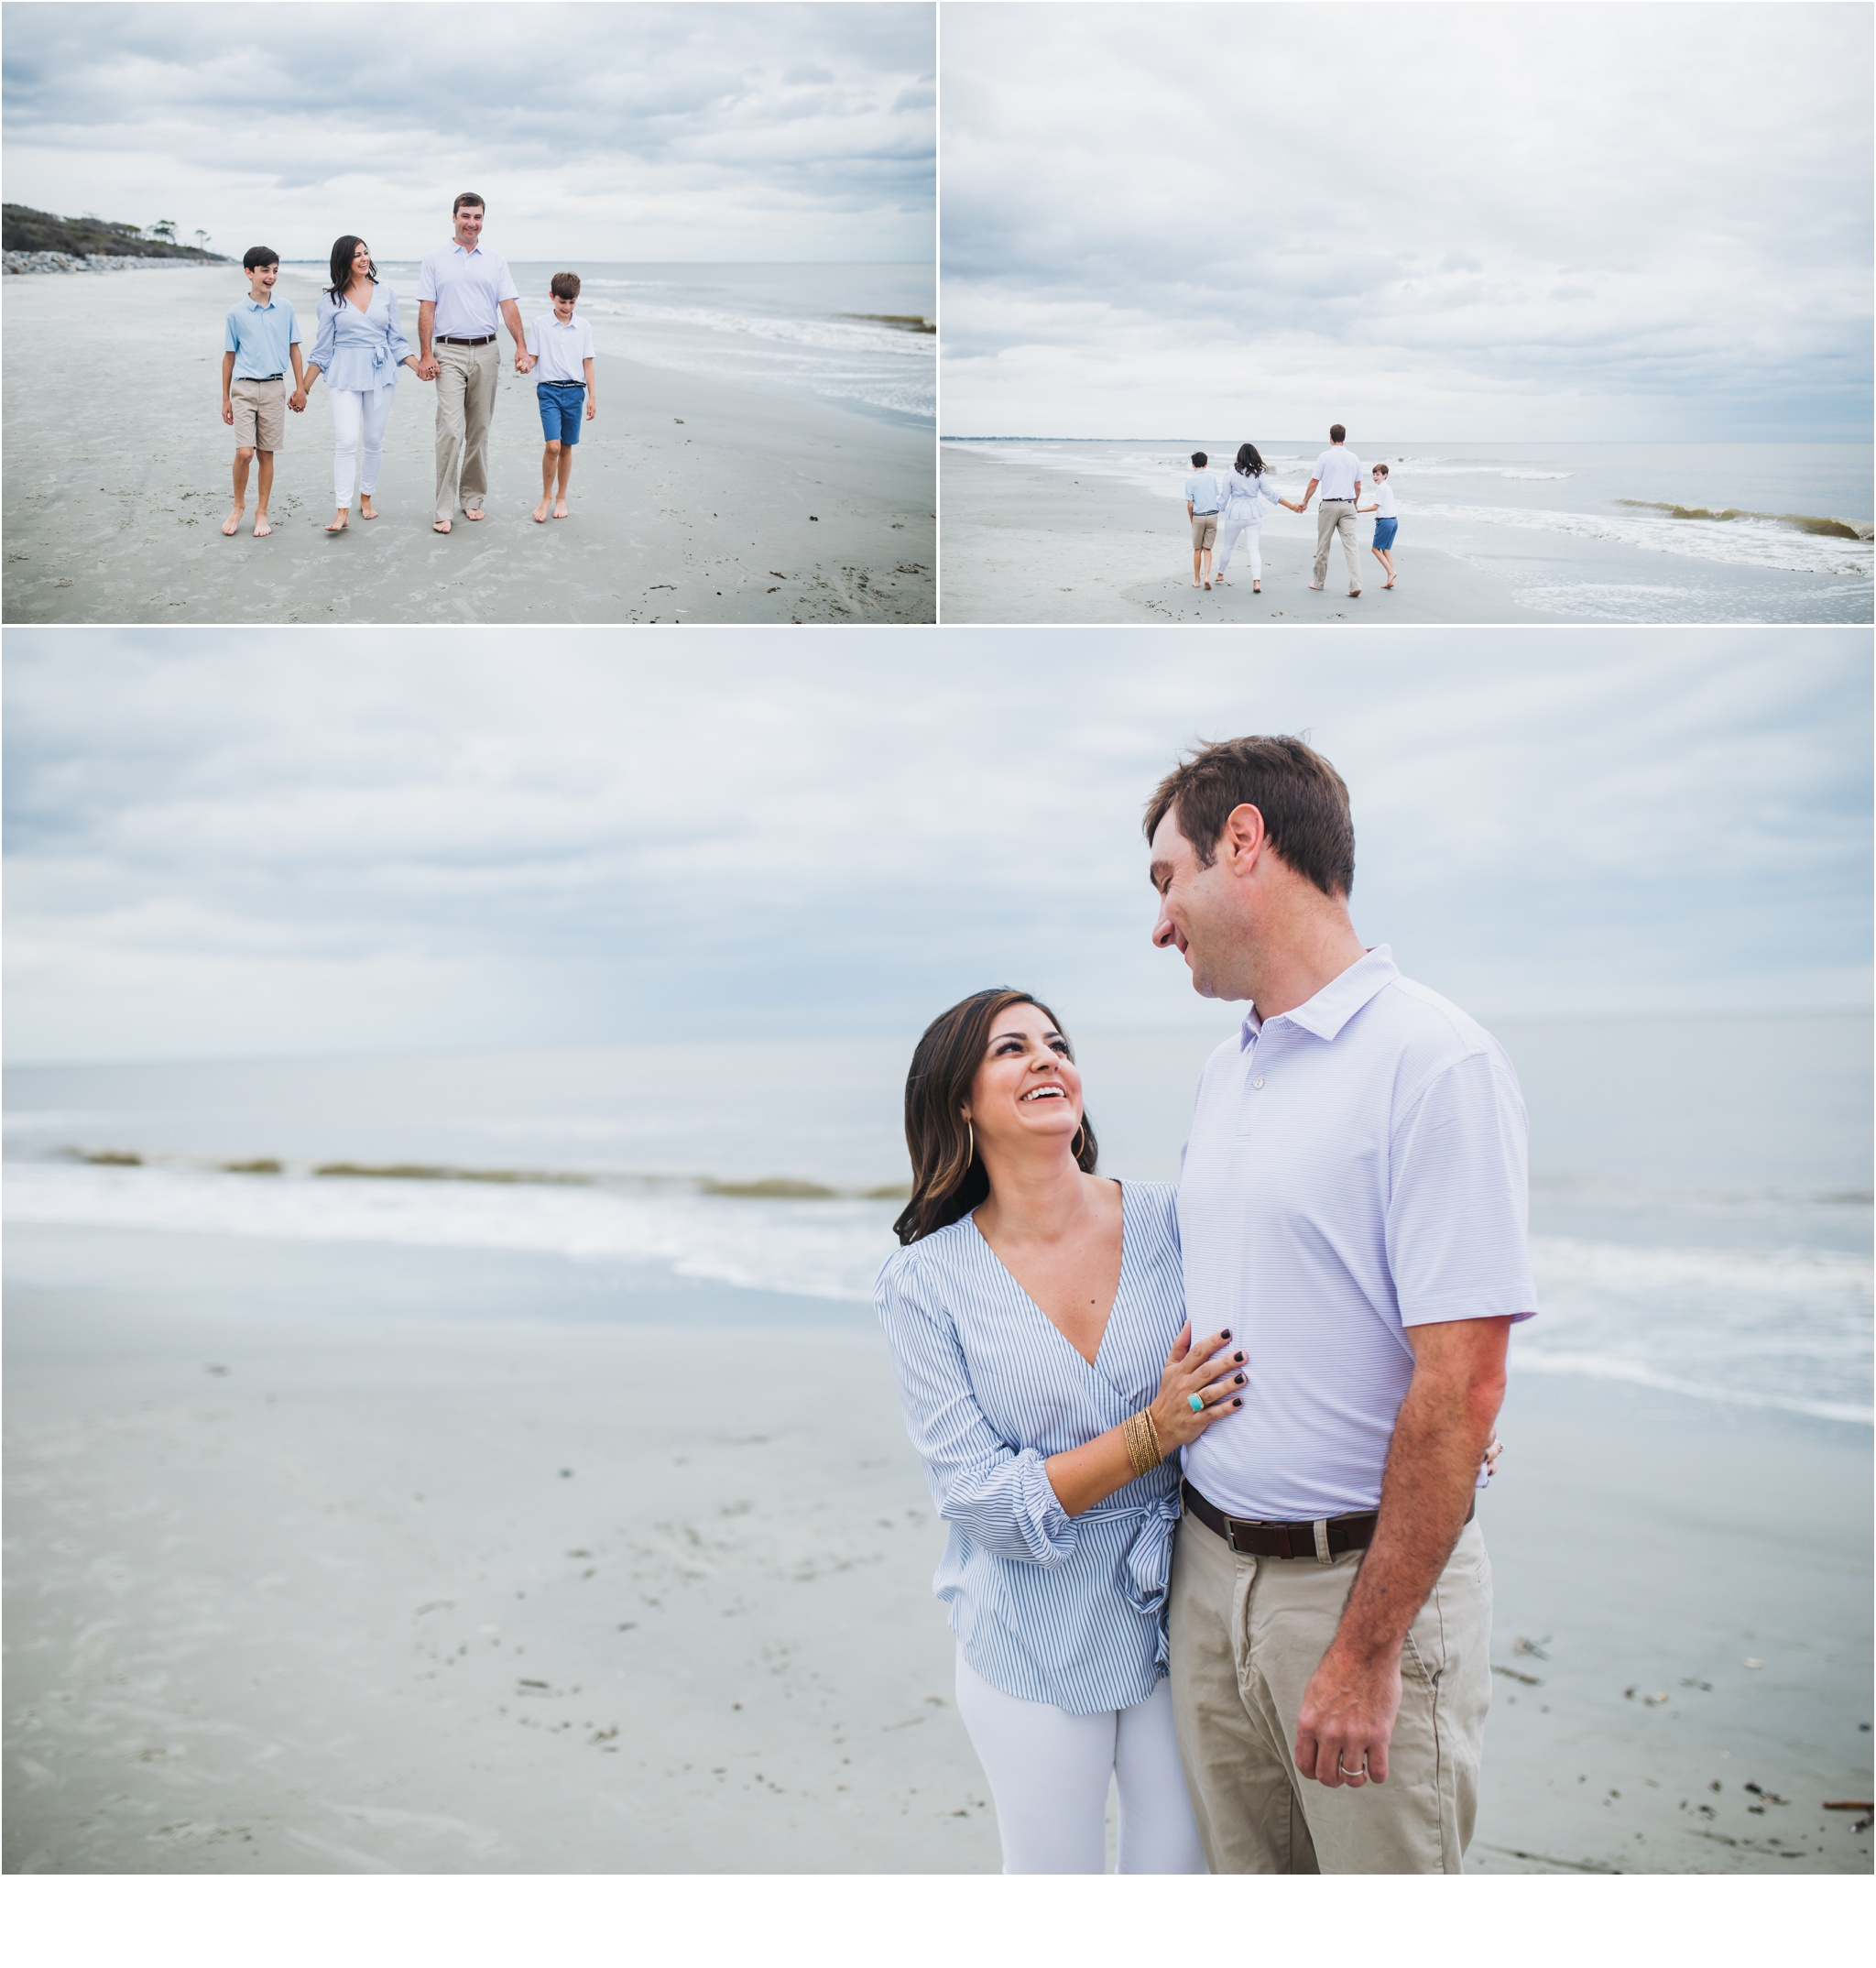 Rainey_Gregg_Photography_St._Simons_Island_Georgia_California_Wedding_Portrait_Photography_1759.jpg